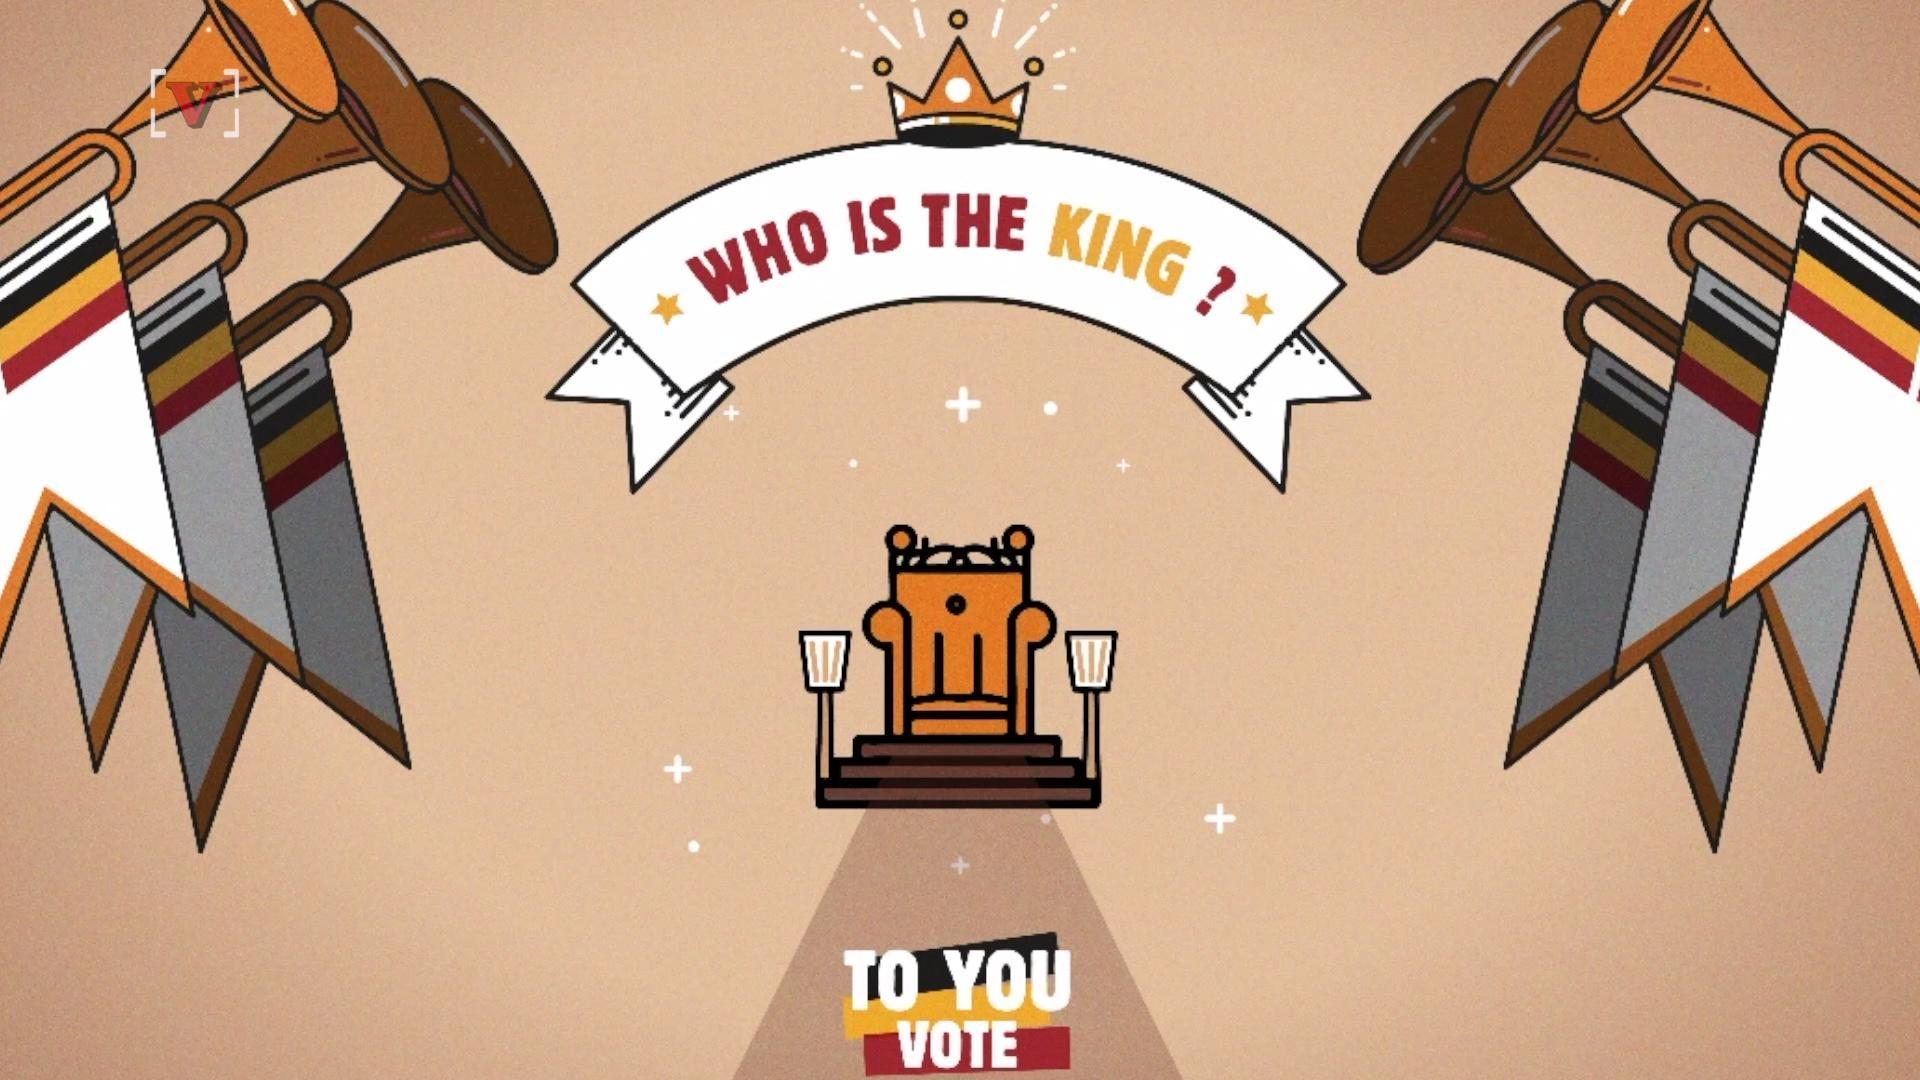 Burger King Upsets King of Belgium with Ad Campaign